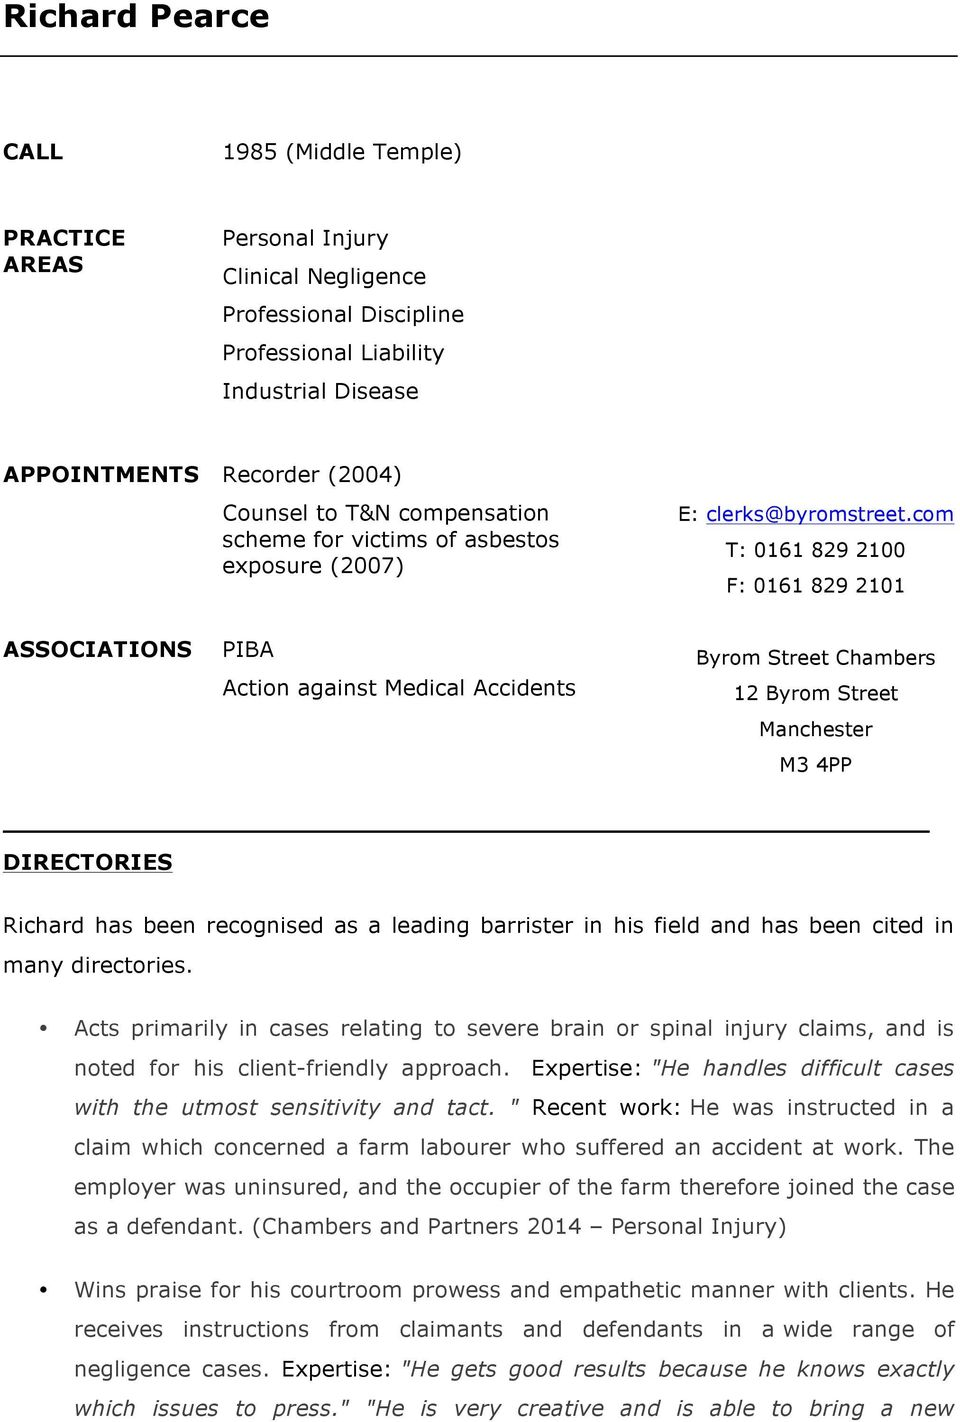 com T: 0161 829 2100 F: 0161 829 2101 ASSOCIATIONS PIBA Action against Medical Accidents Byrom Street Chambers 12 Byrom Street Manchester M3 4PP DIRECTORIES Richard has been recognised as a leading